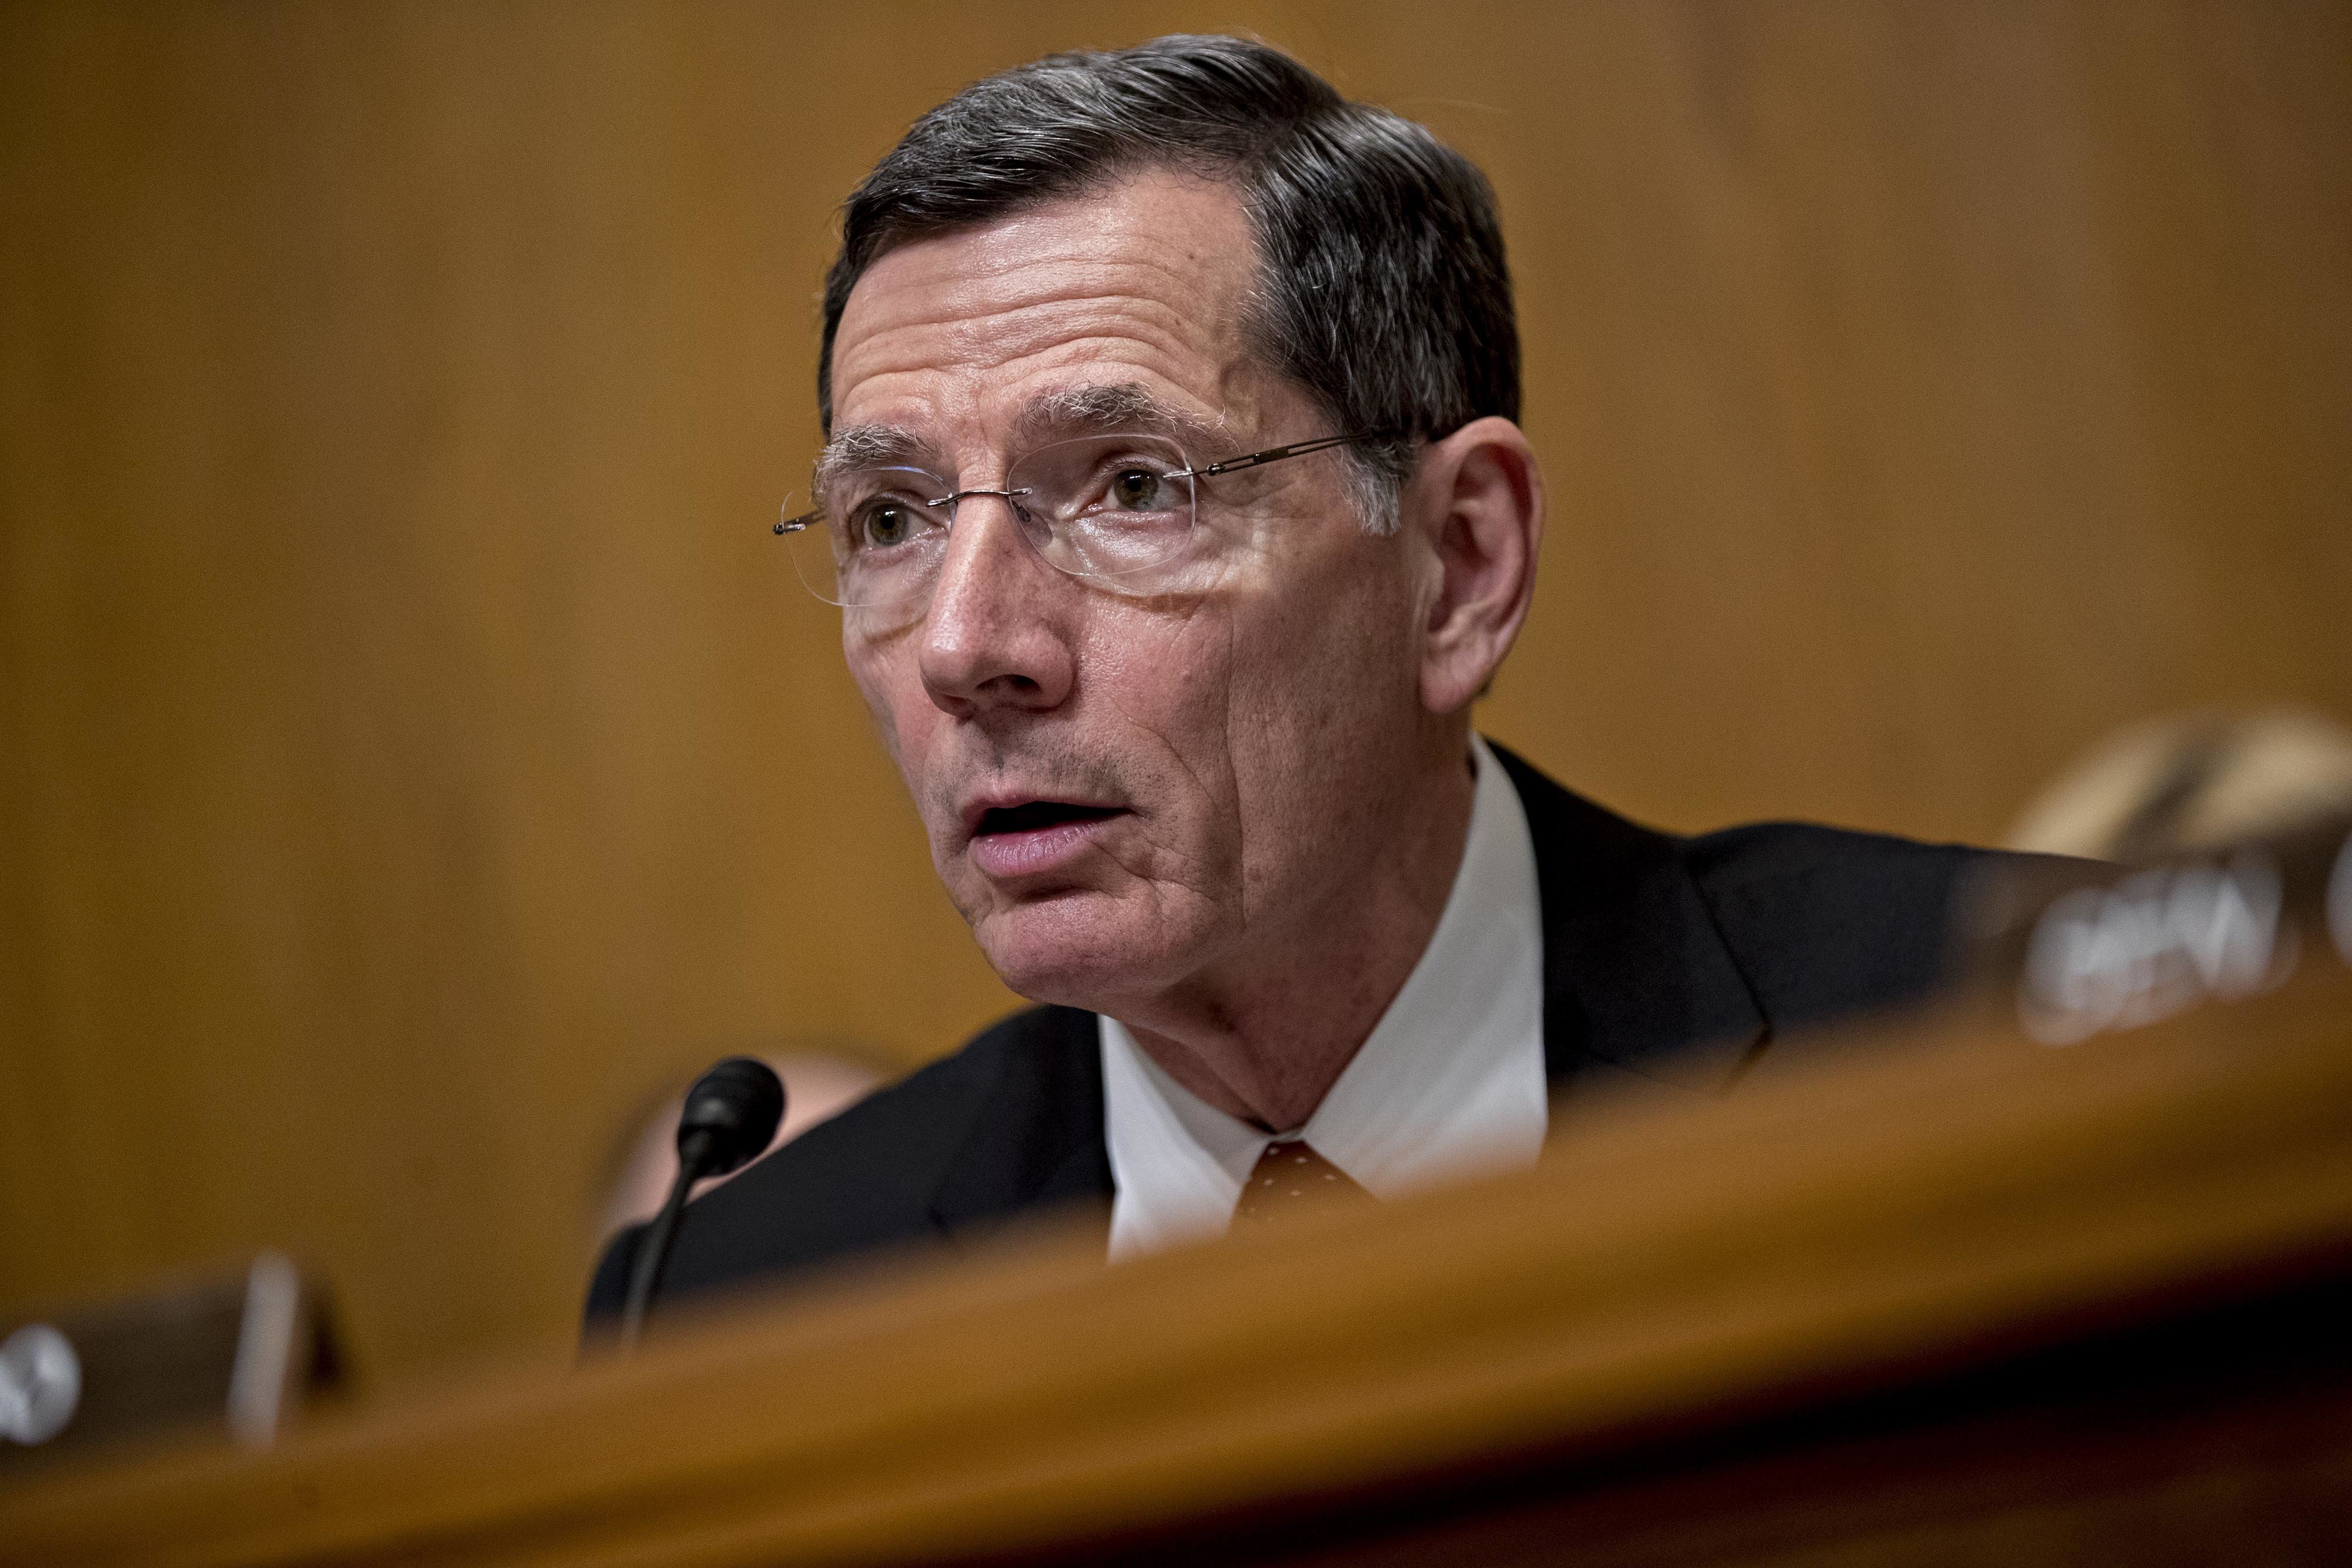 Sen. John Barrasso (R-Wyo.), chairman of the Environment and Public Works Committee, says the Endangered Species Act needs an